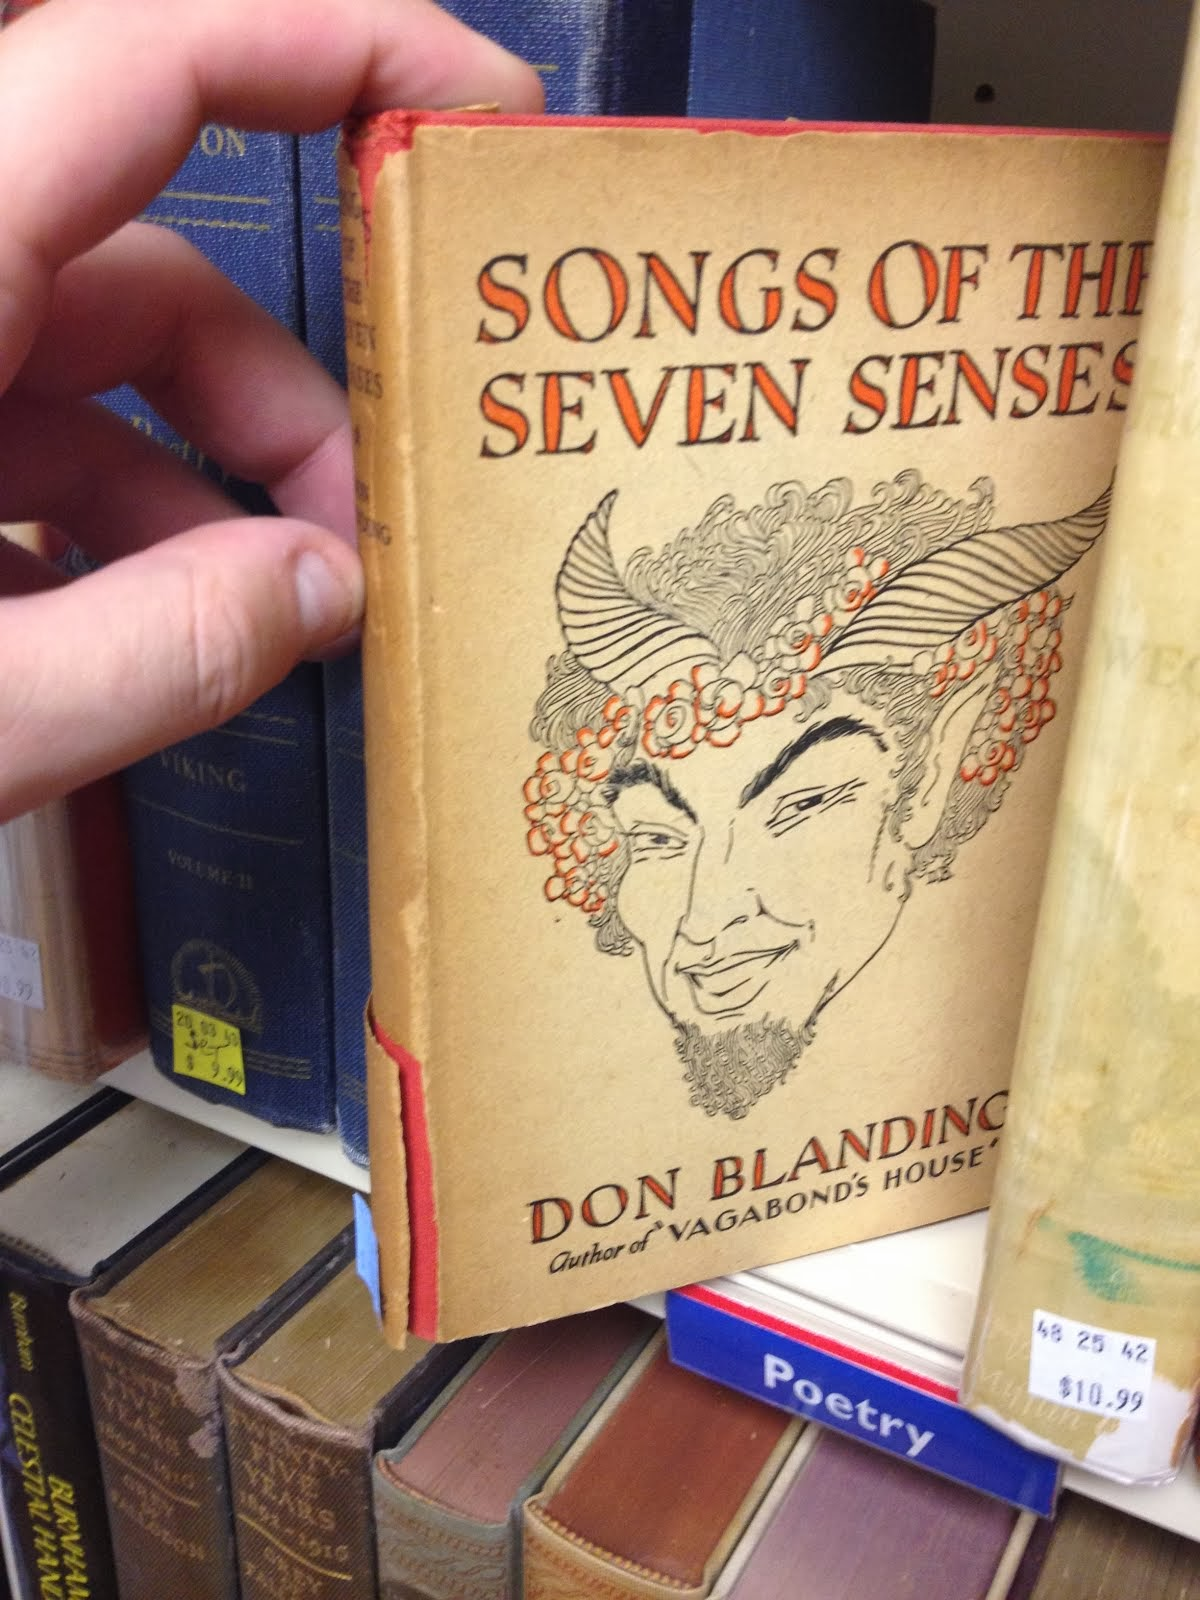 Songs of the Seven Senses